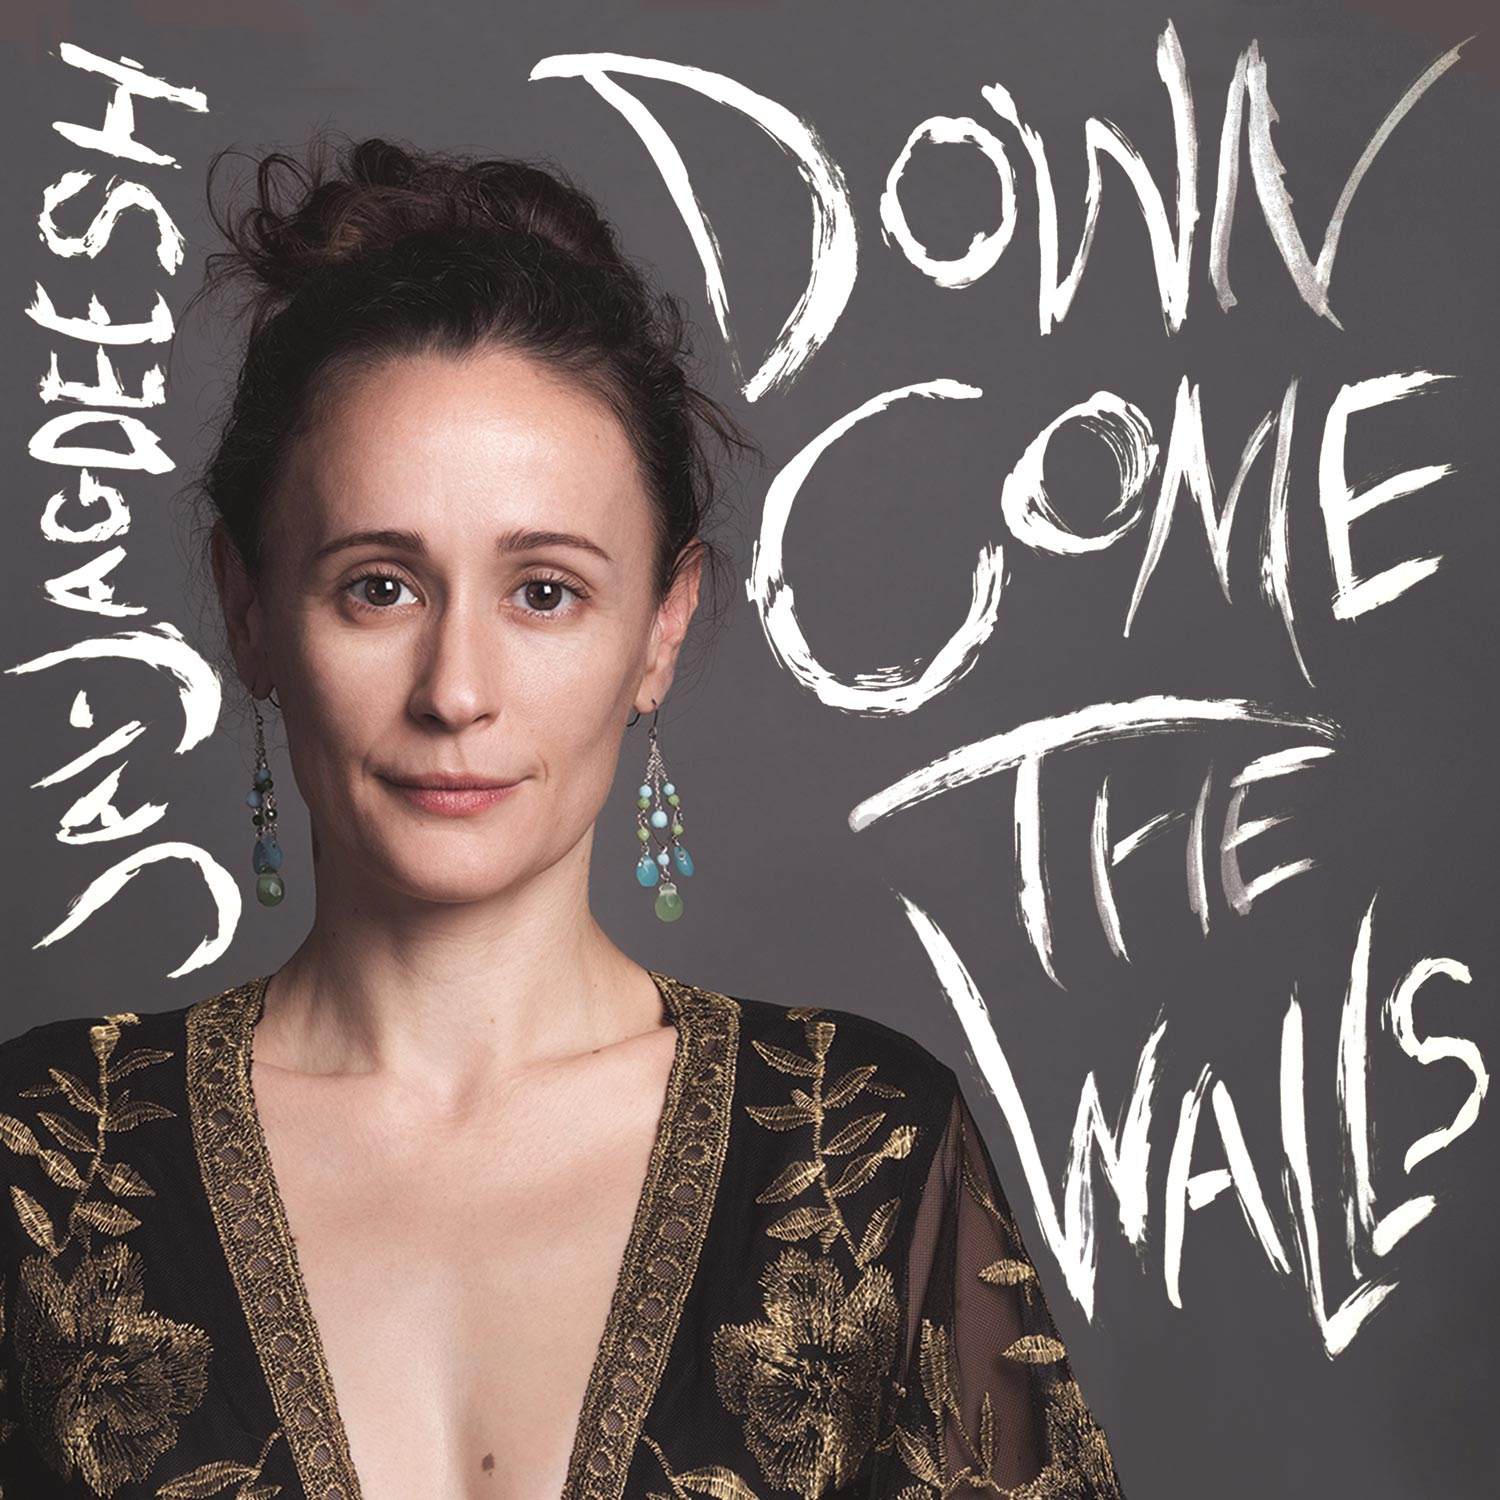 Down Come the Walls - Jai Jagdeesh CD